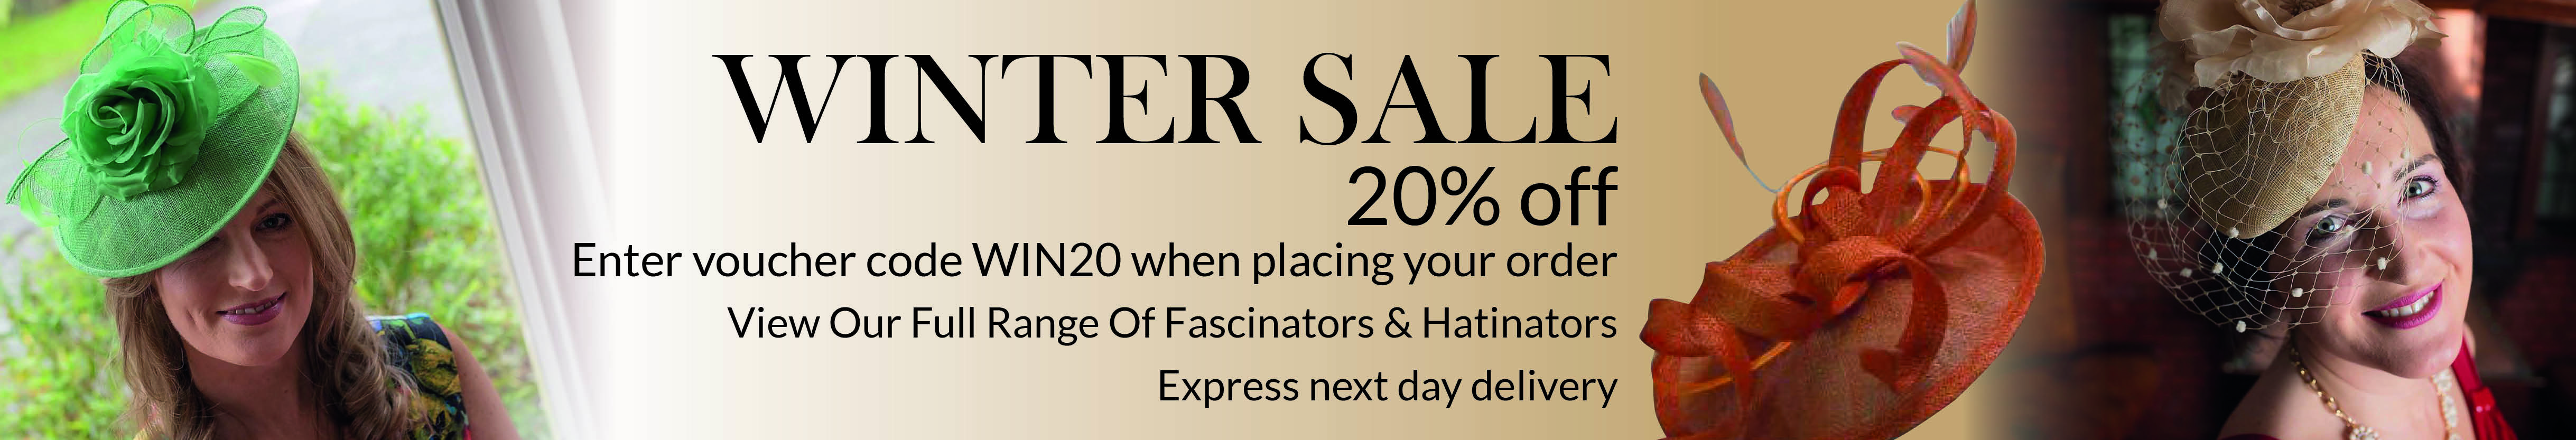 Winter Sale 20% off all Fascinators